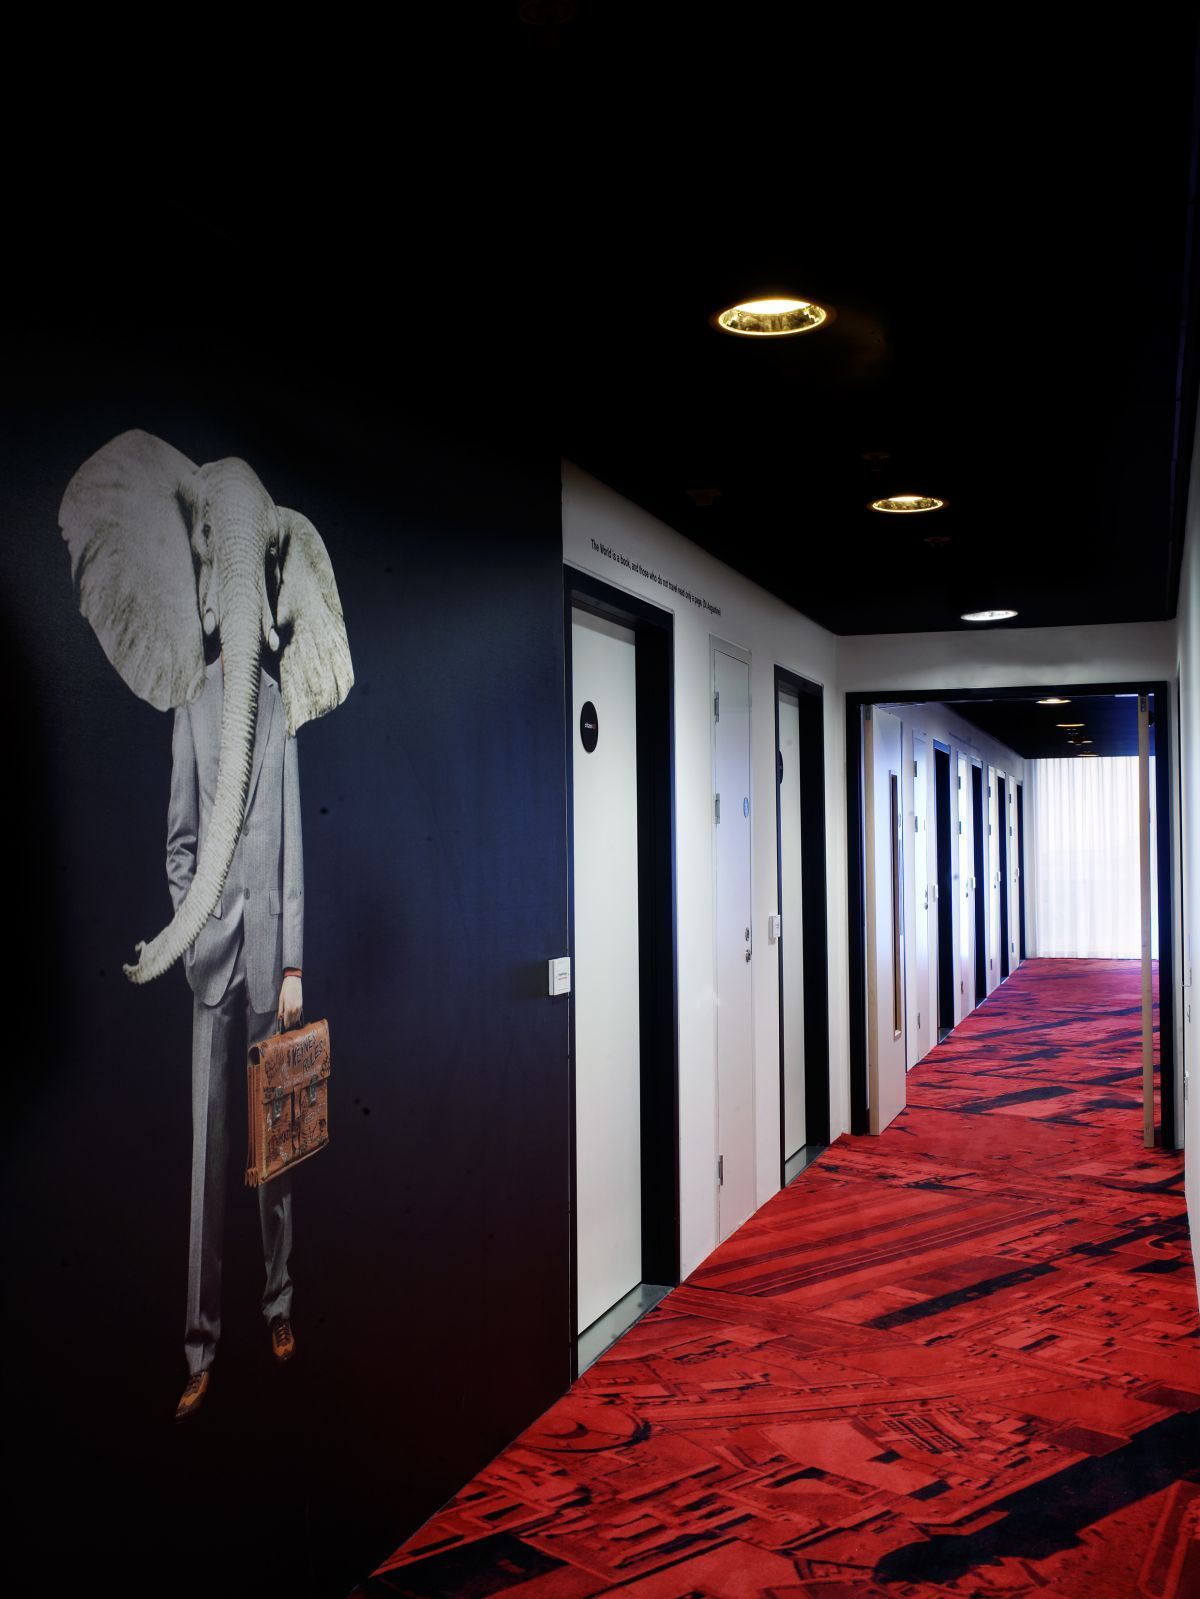 Interior Hallway With Black Wall And Red Flooring Awesome Citizenm Glasgow Hotel Like Wonderland Design Corridor Design Hotel Corridor Hotel Interior Design